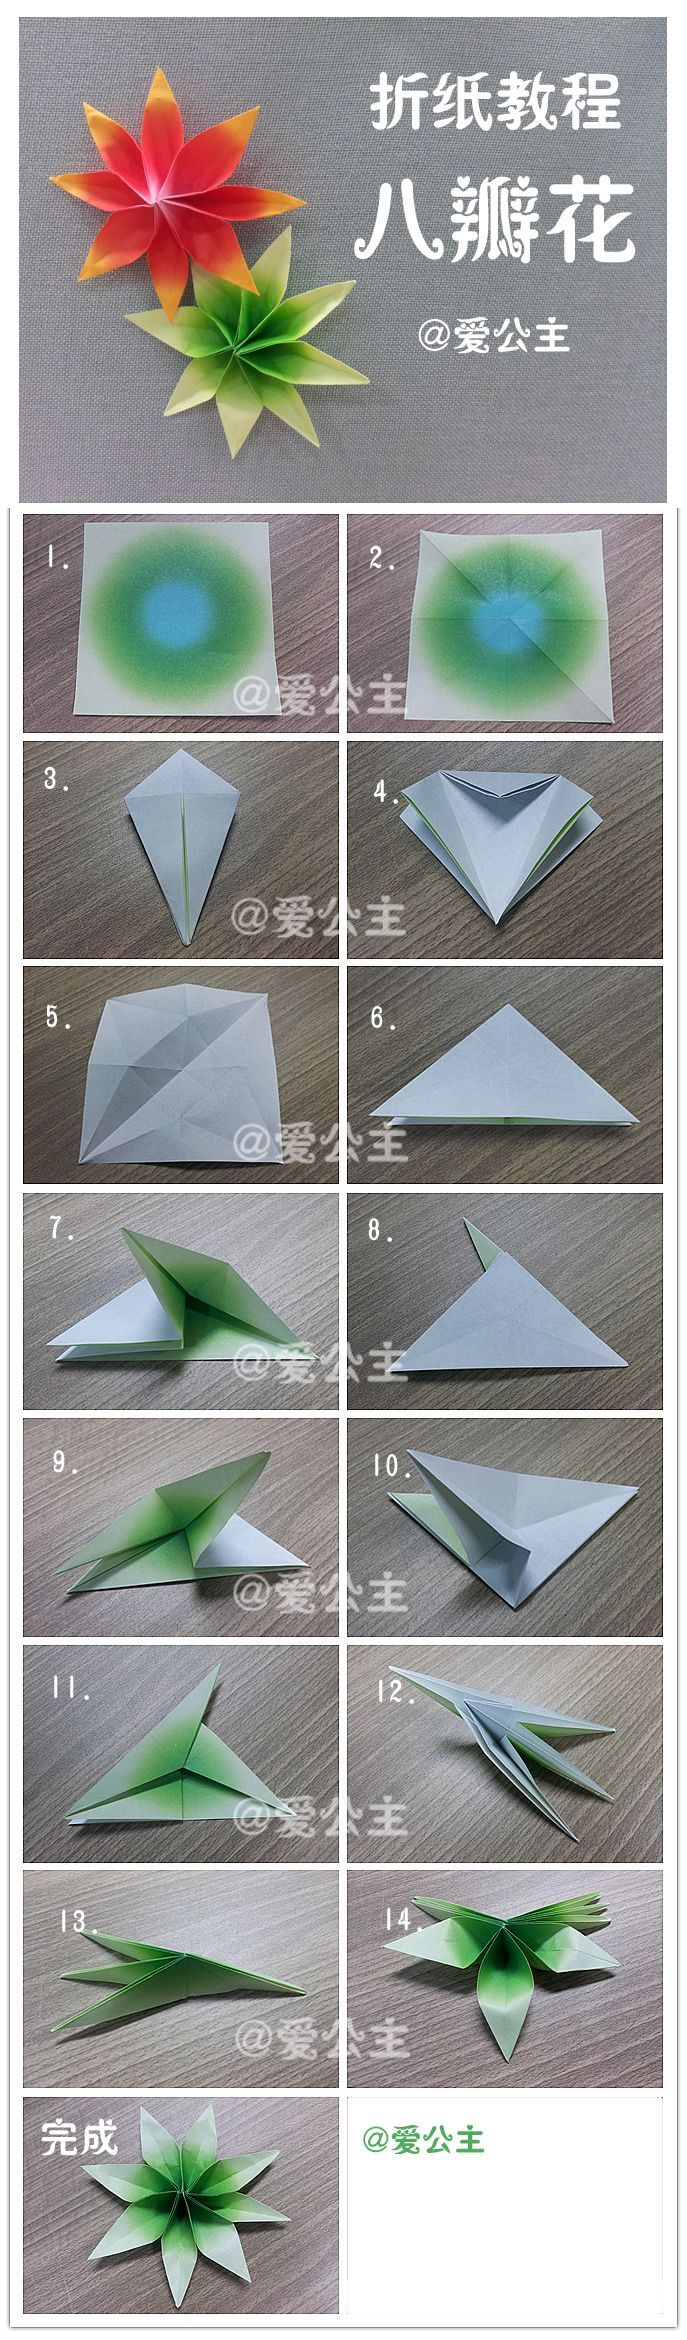 Pin By Dhii Naa On Places To Visit Origami Origami Flowers Diy